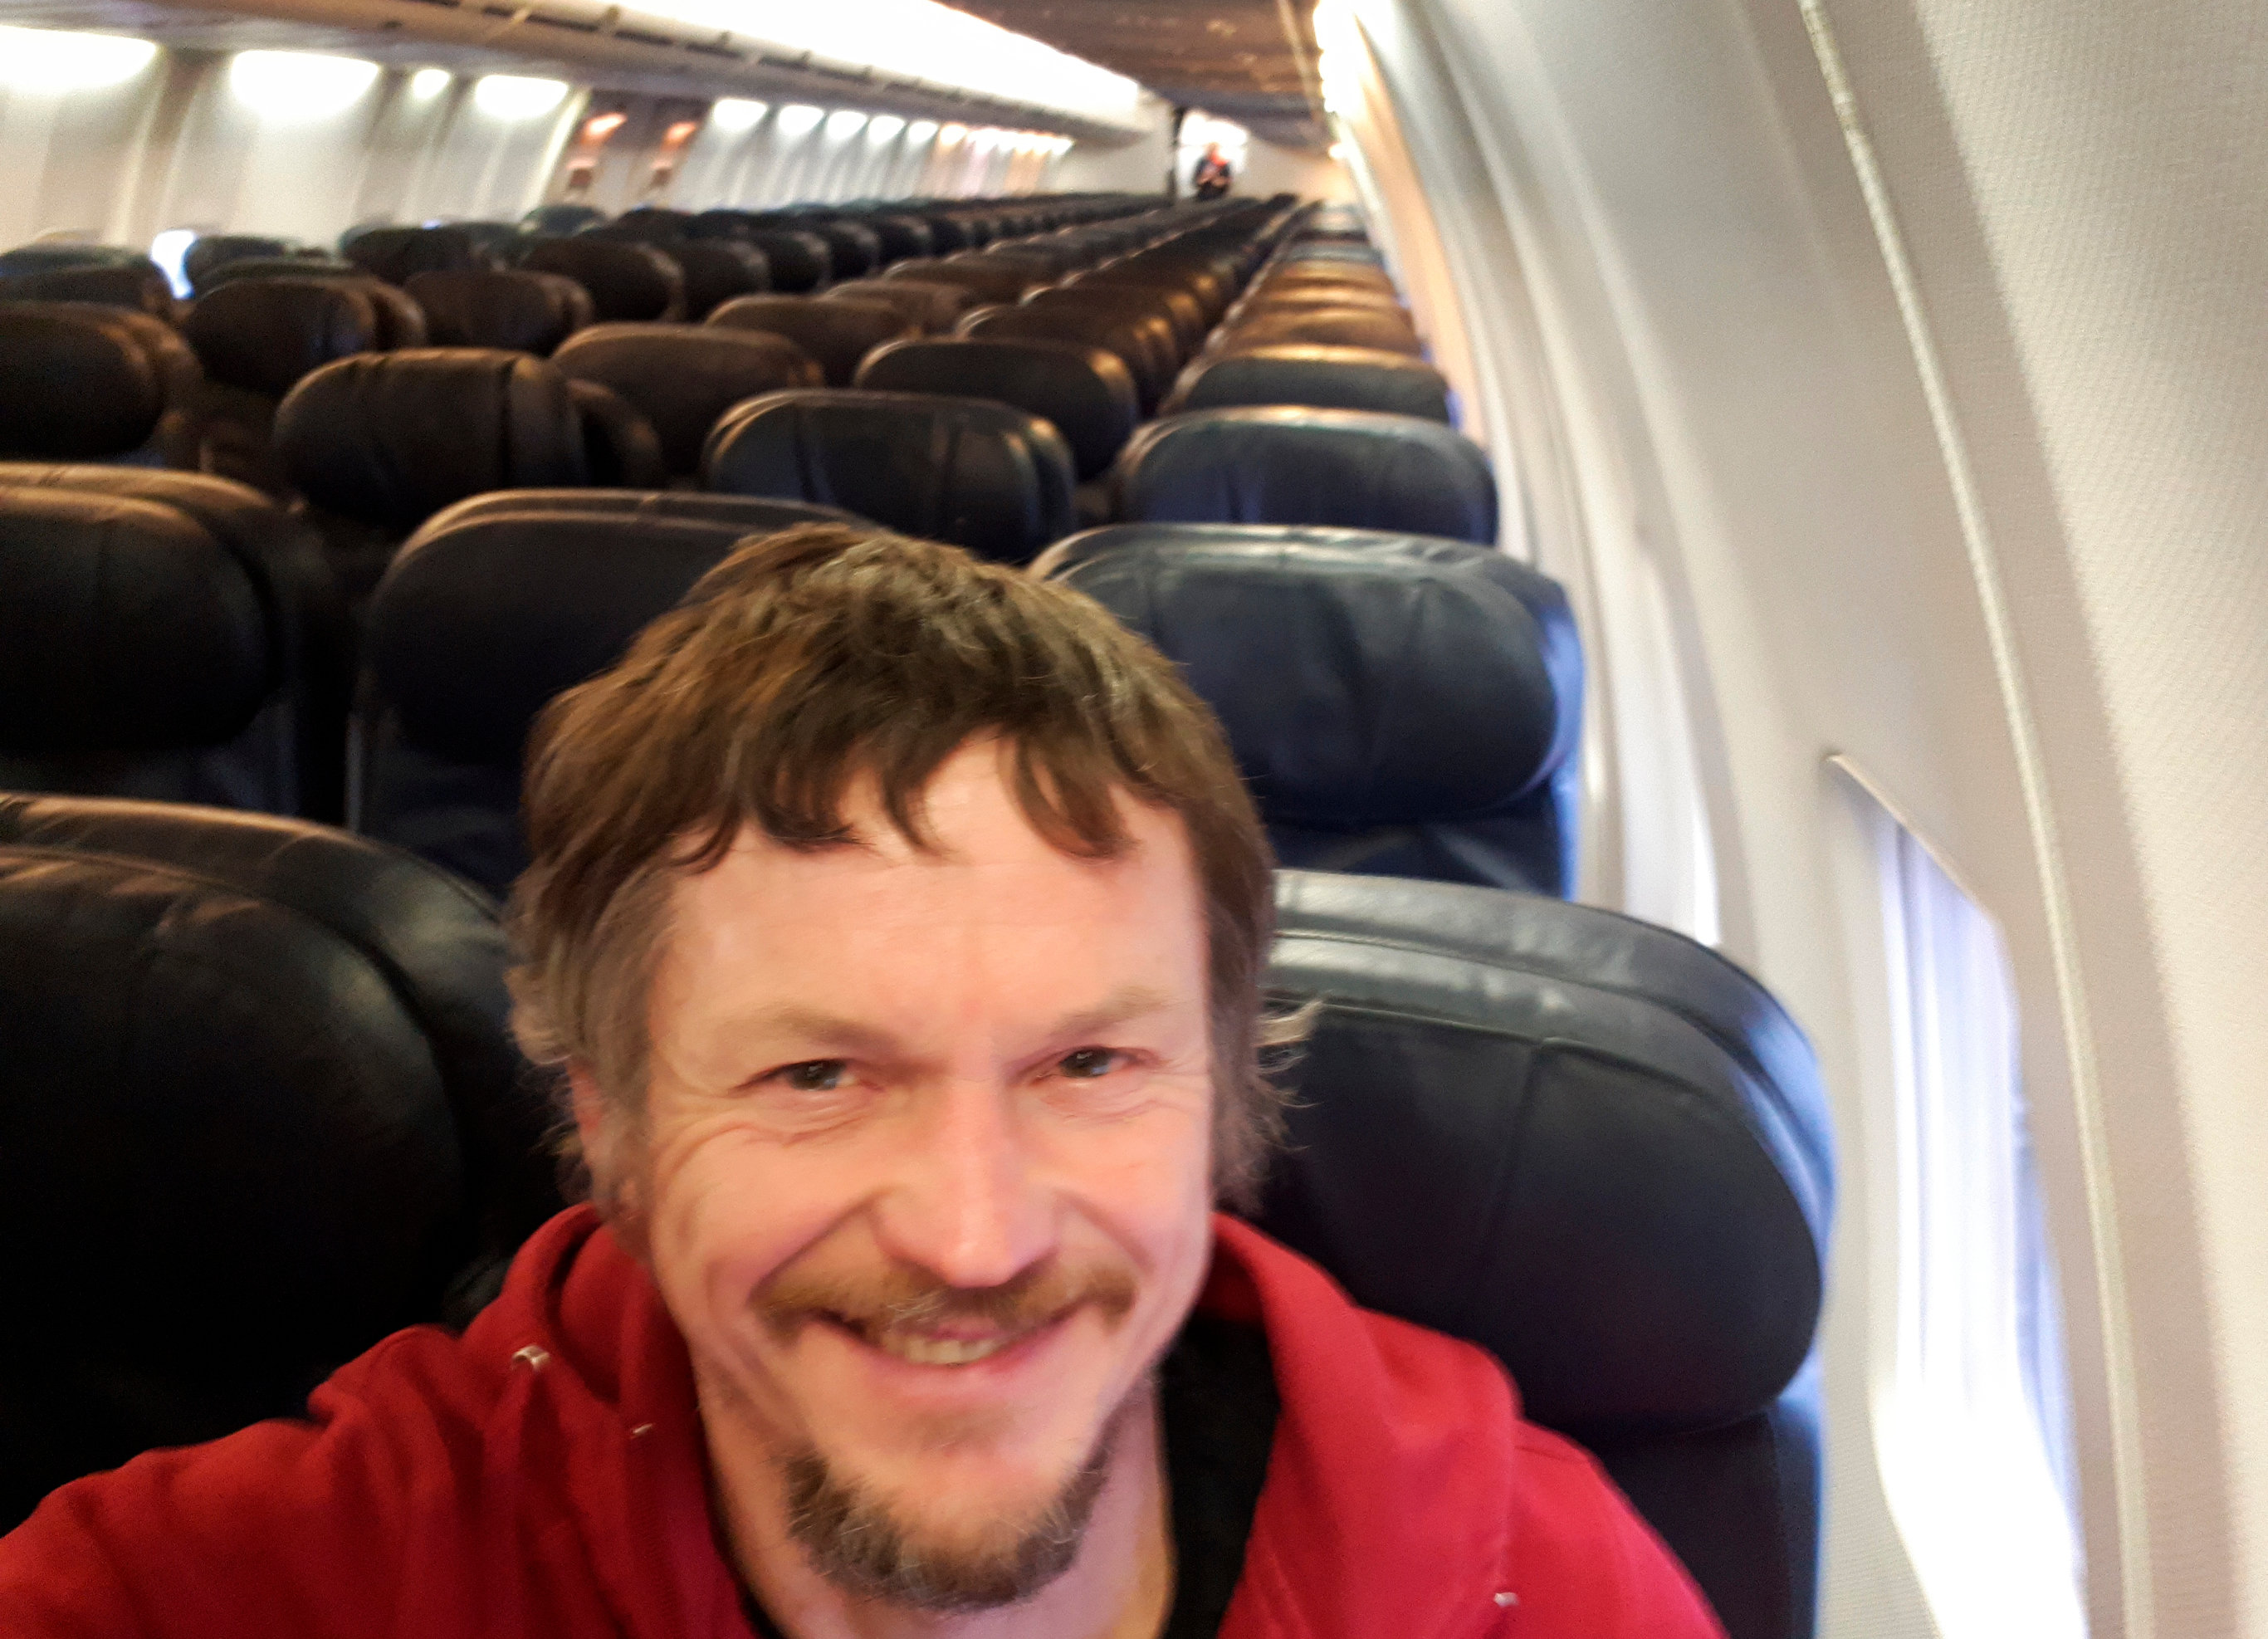 Man Boards 188-Passenger Plane To Discover He's The Only Passenger On The Flight